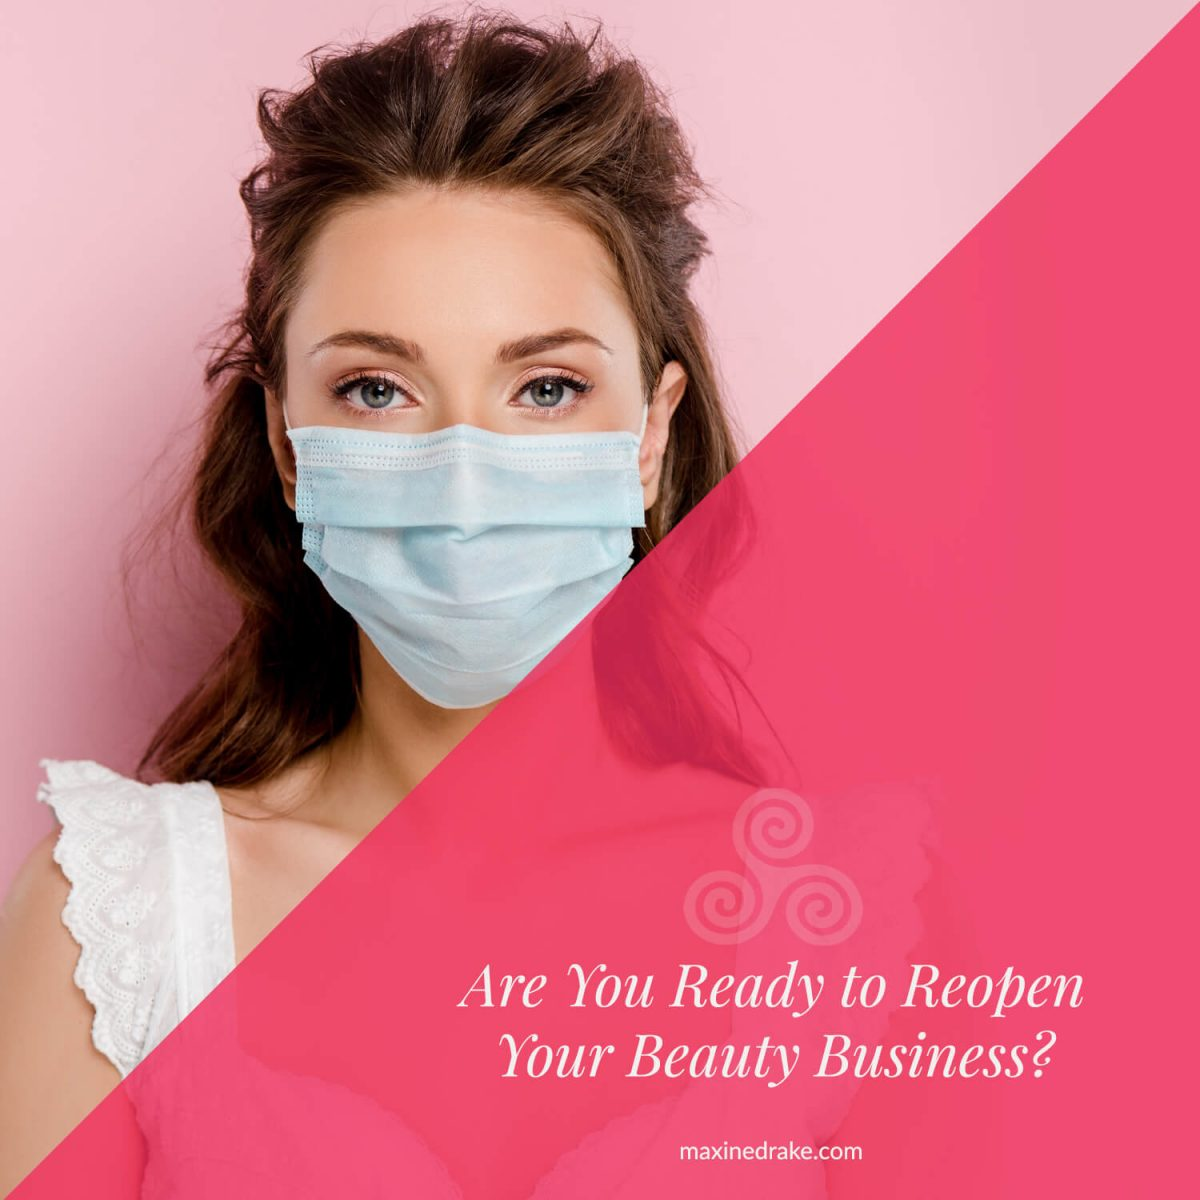 maxine drake blog image - are you ready to reopen your beauty business